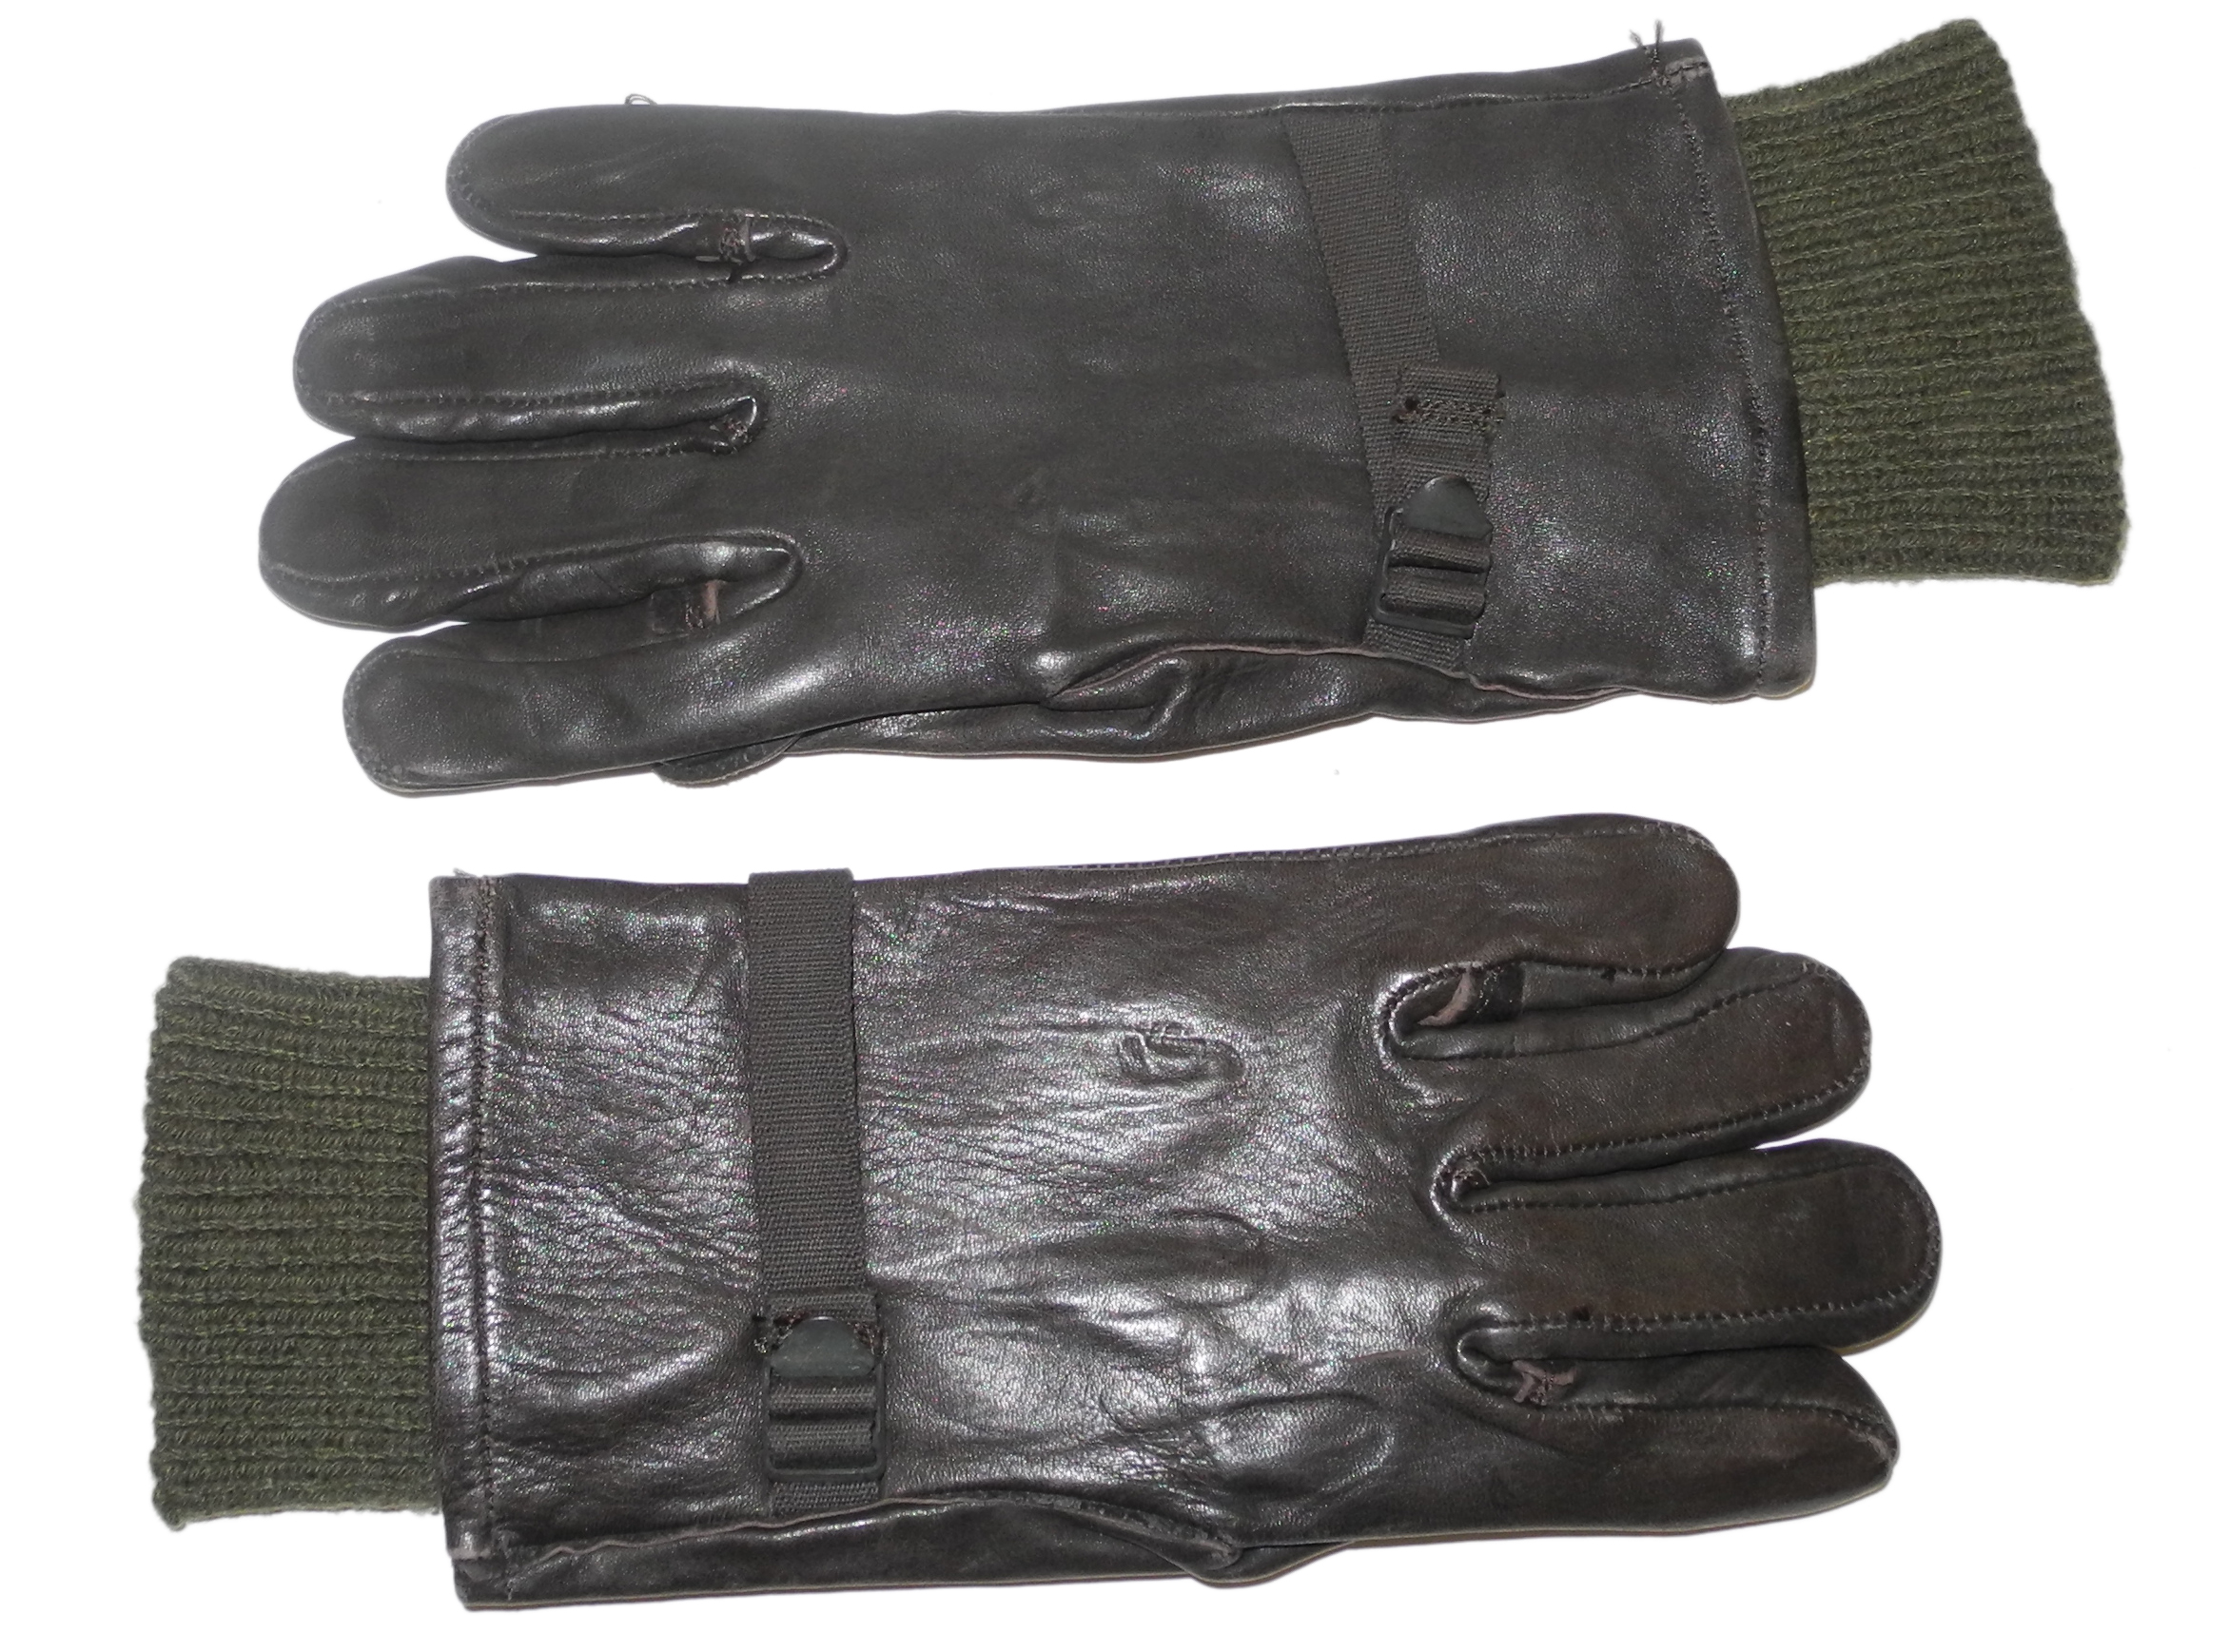 AAF / USAF M-47 gloves and liners